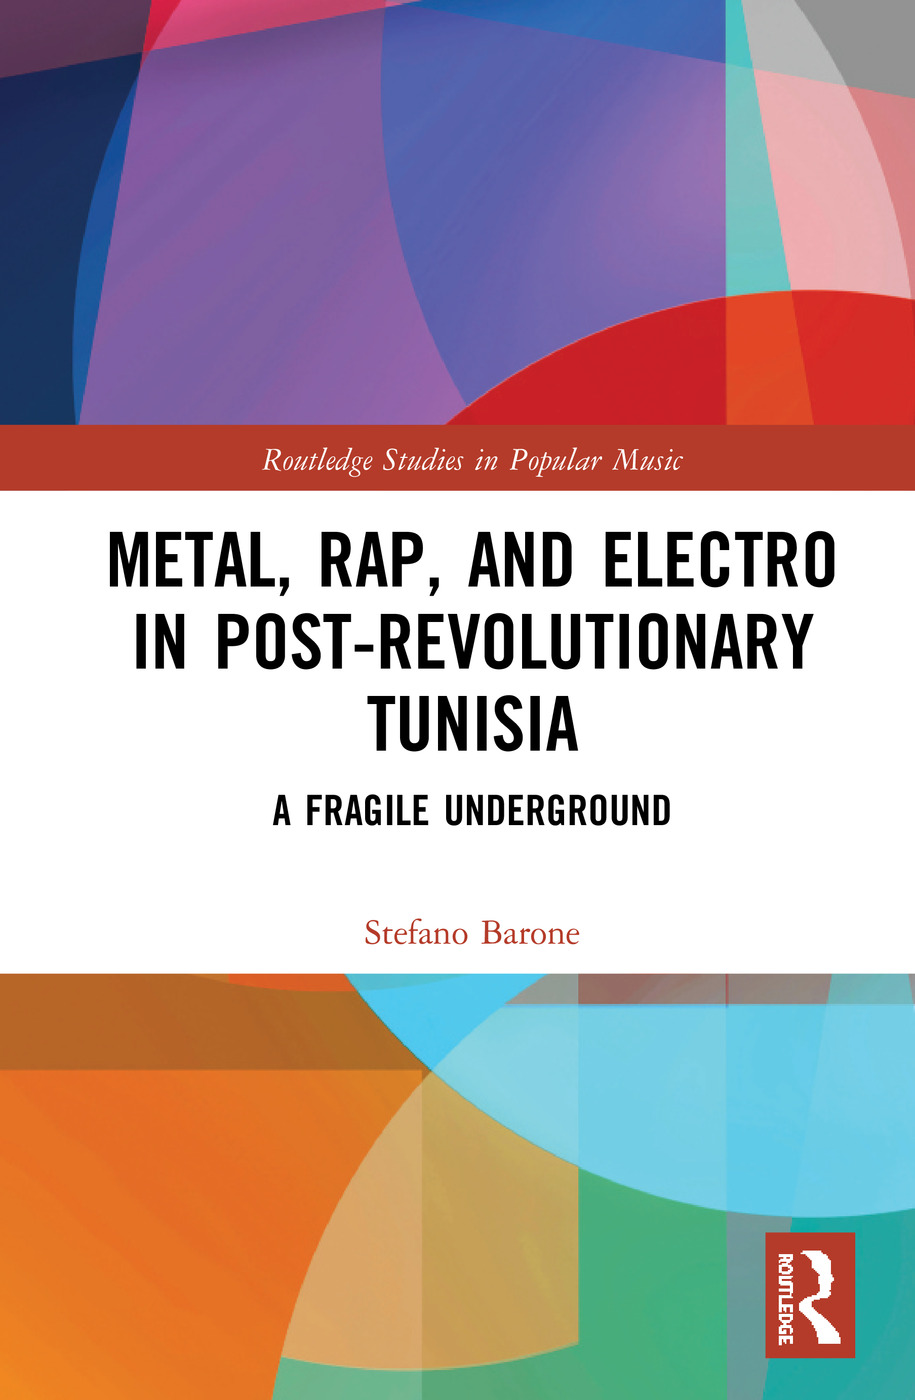 Metal, Rap, and Electro in Post-Revolutionary Tunisia: A Fragile Underground book cover